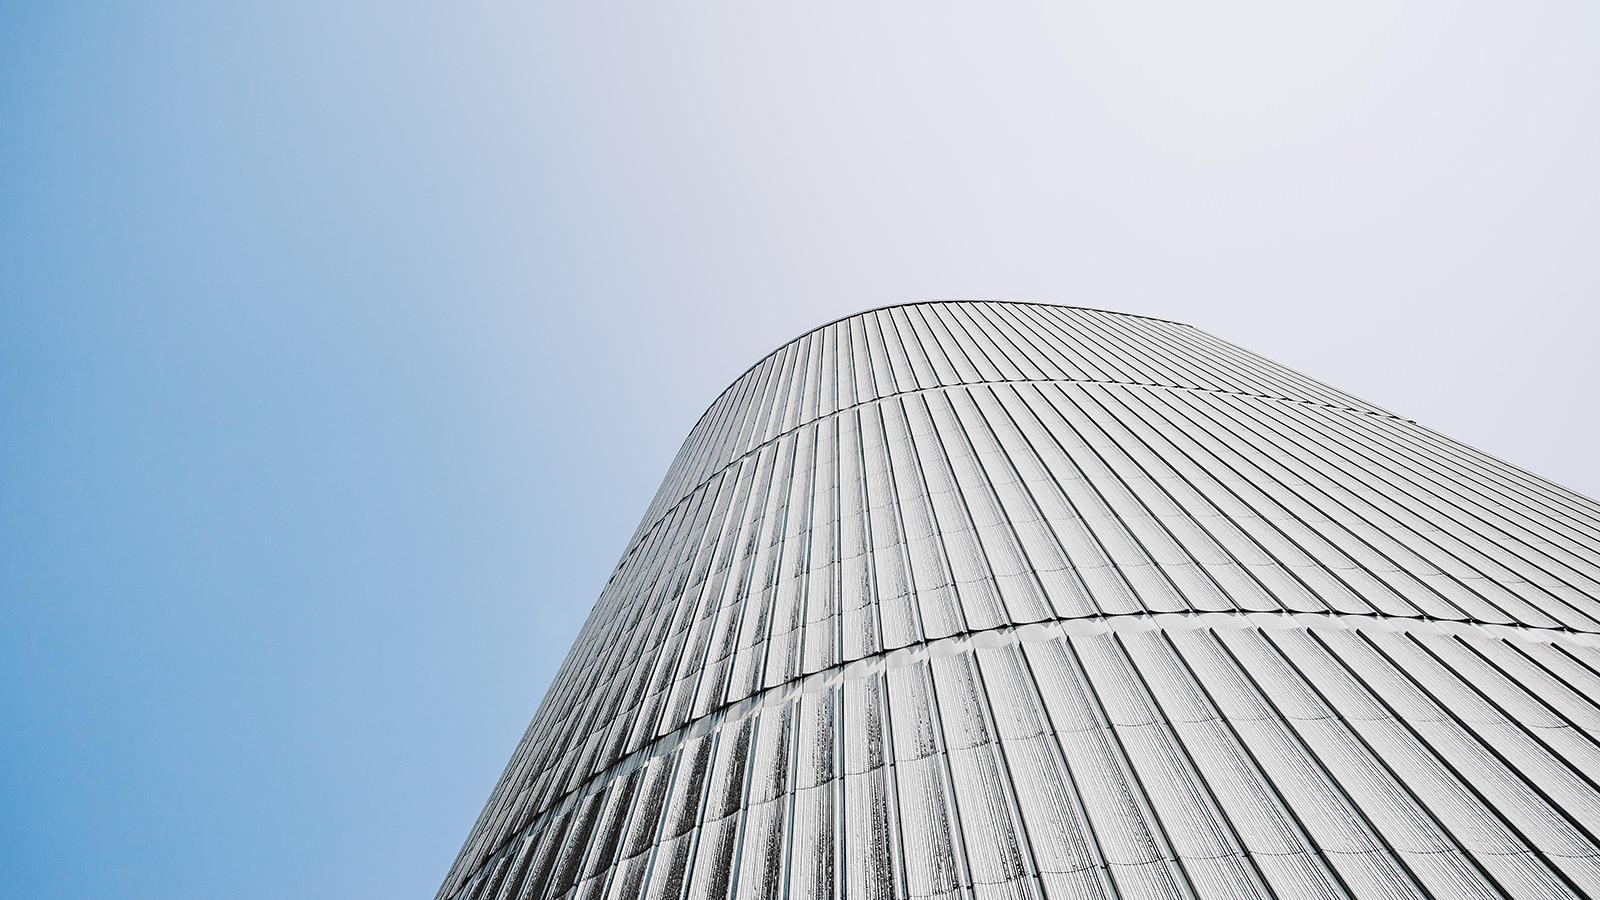 Abstract Architectural Photo in Toronto